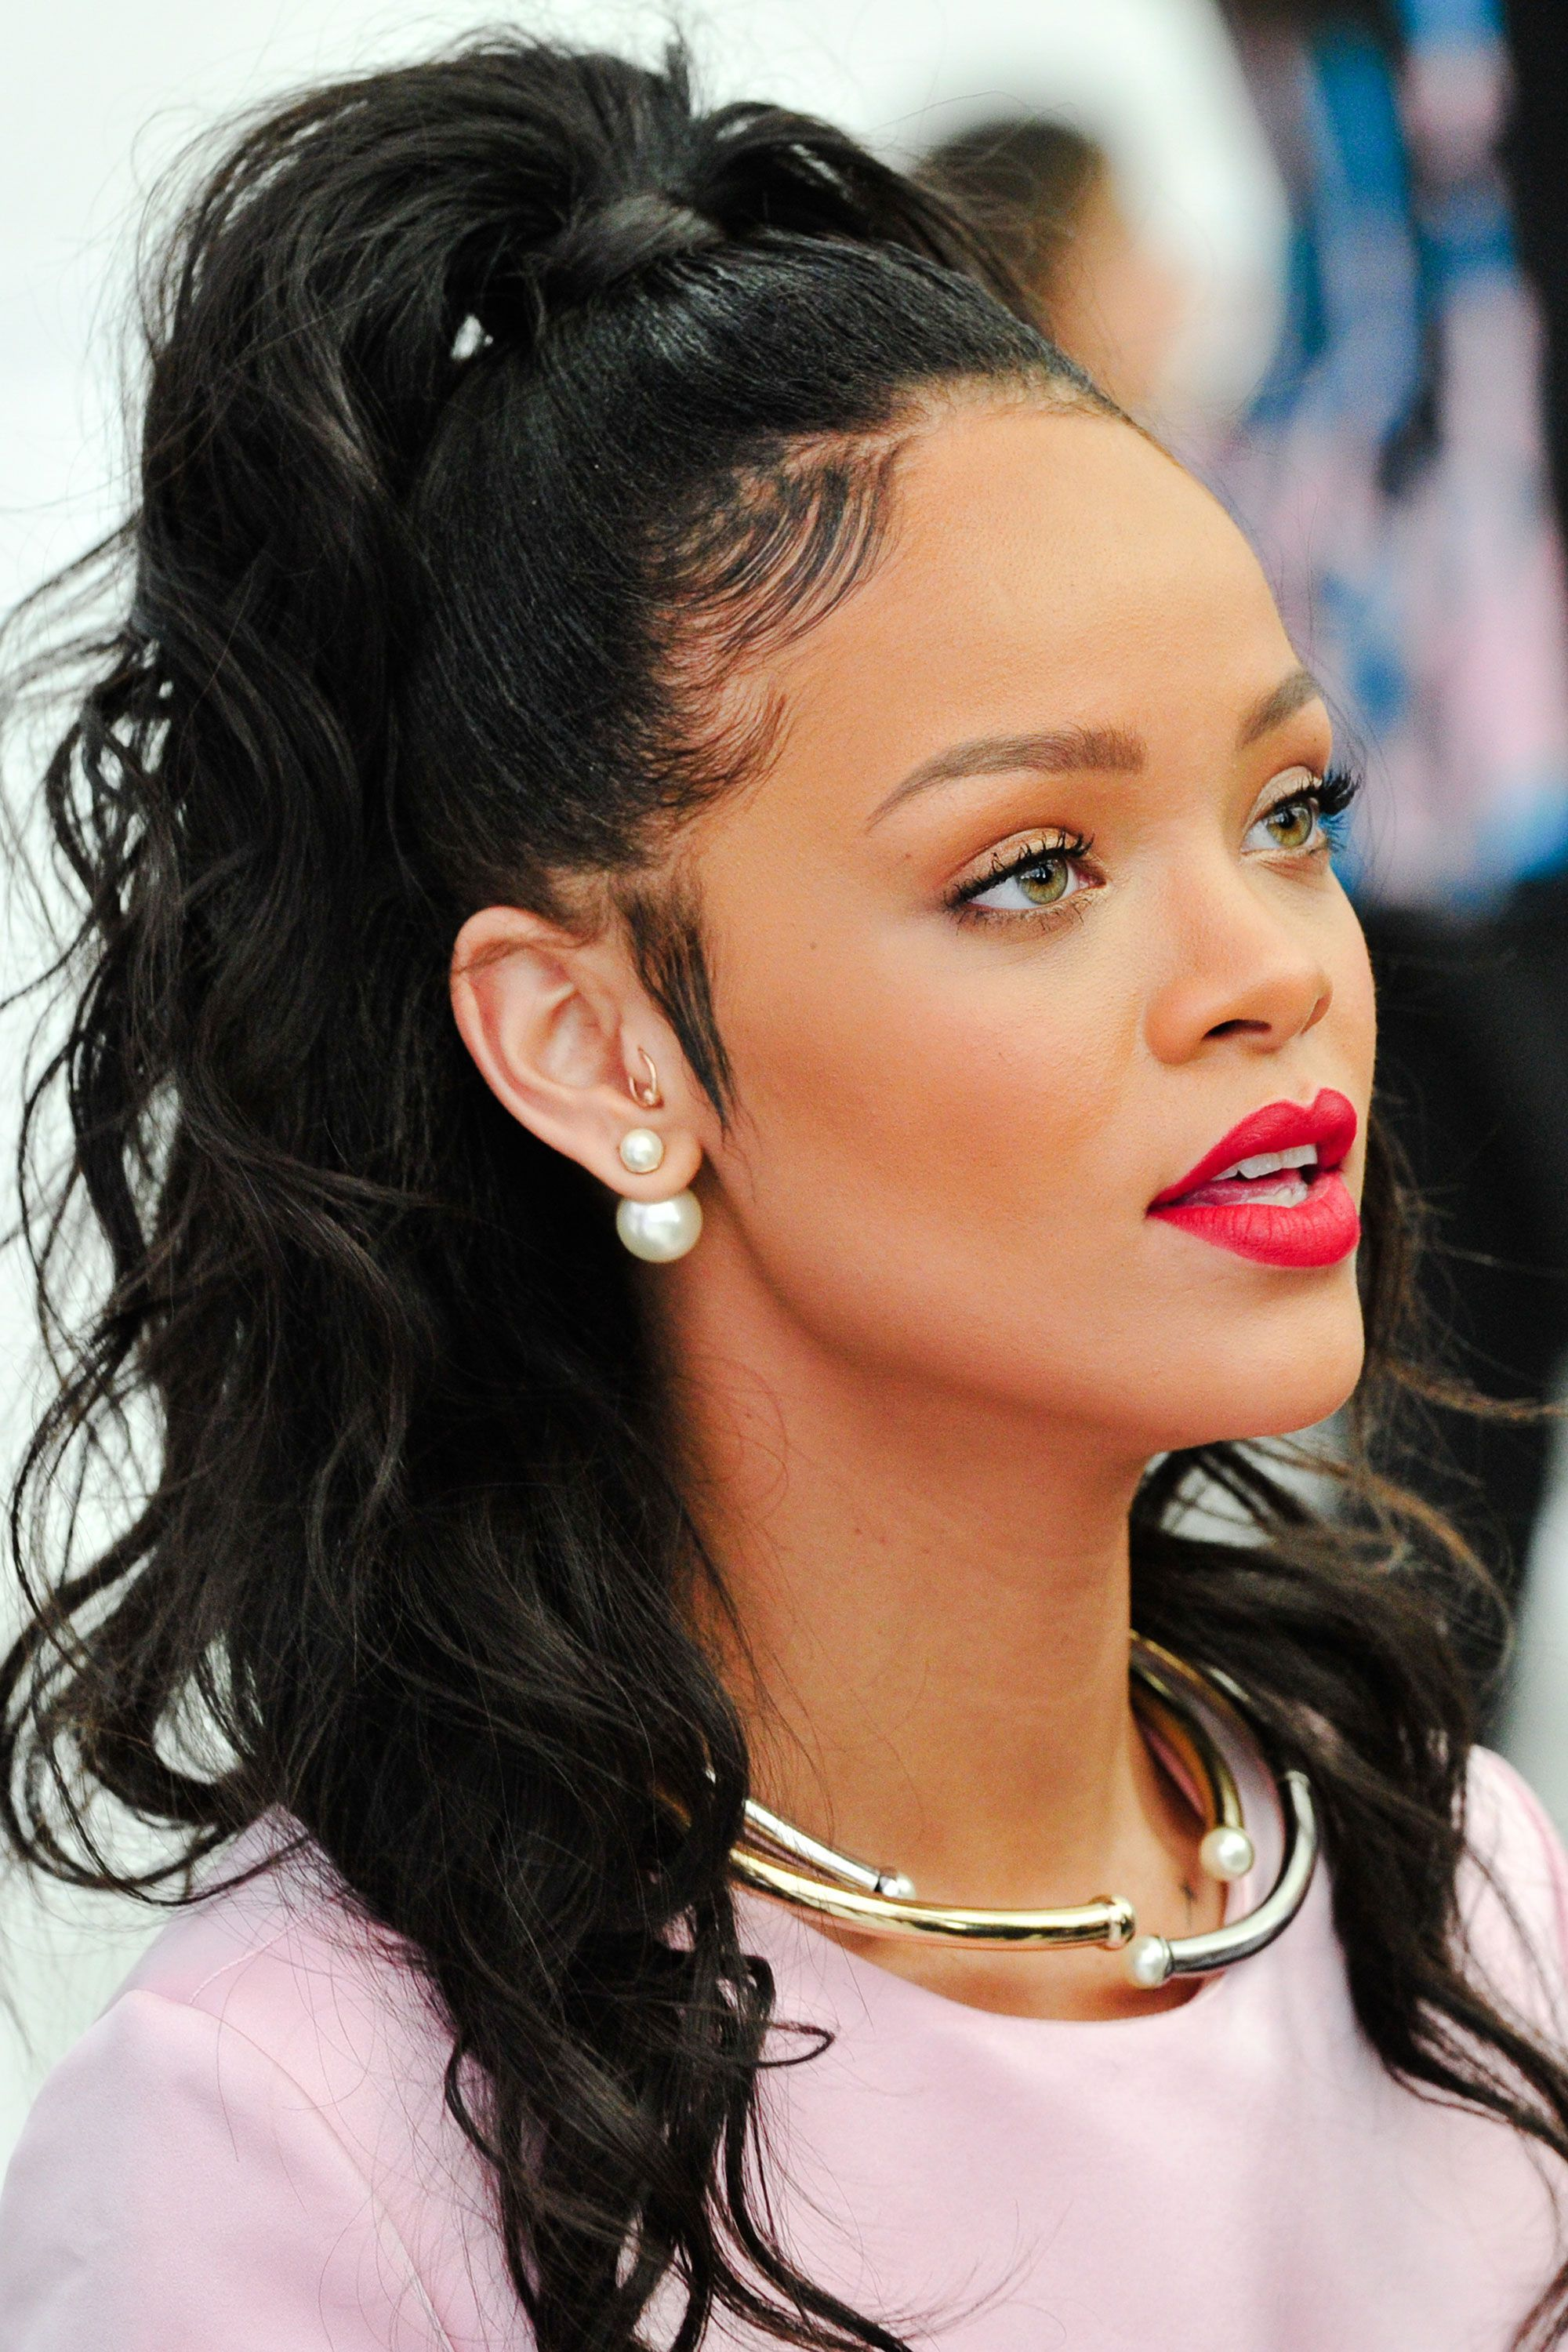 silvano hoop earrings for photo gallery dinner da big rihanna